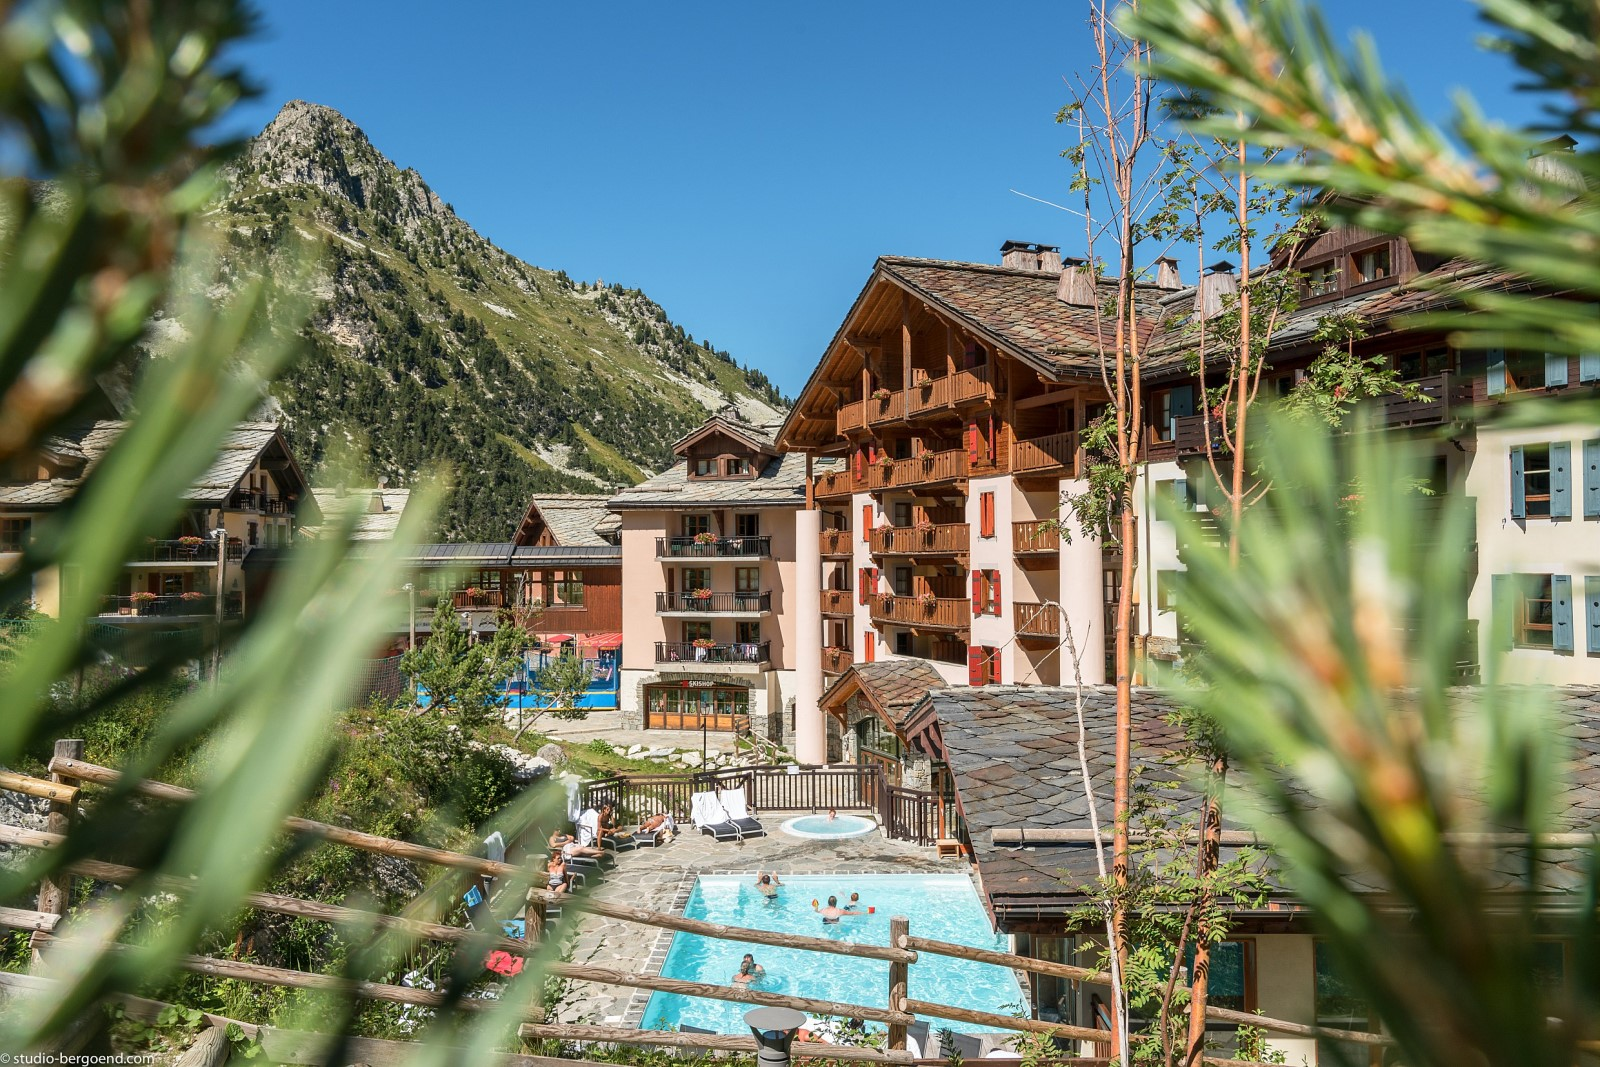 Enjoy the SPA and the swimming pools in the resort's different hotel residences after a day of hiking